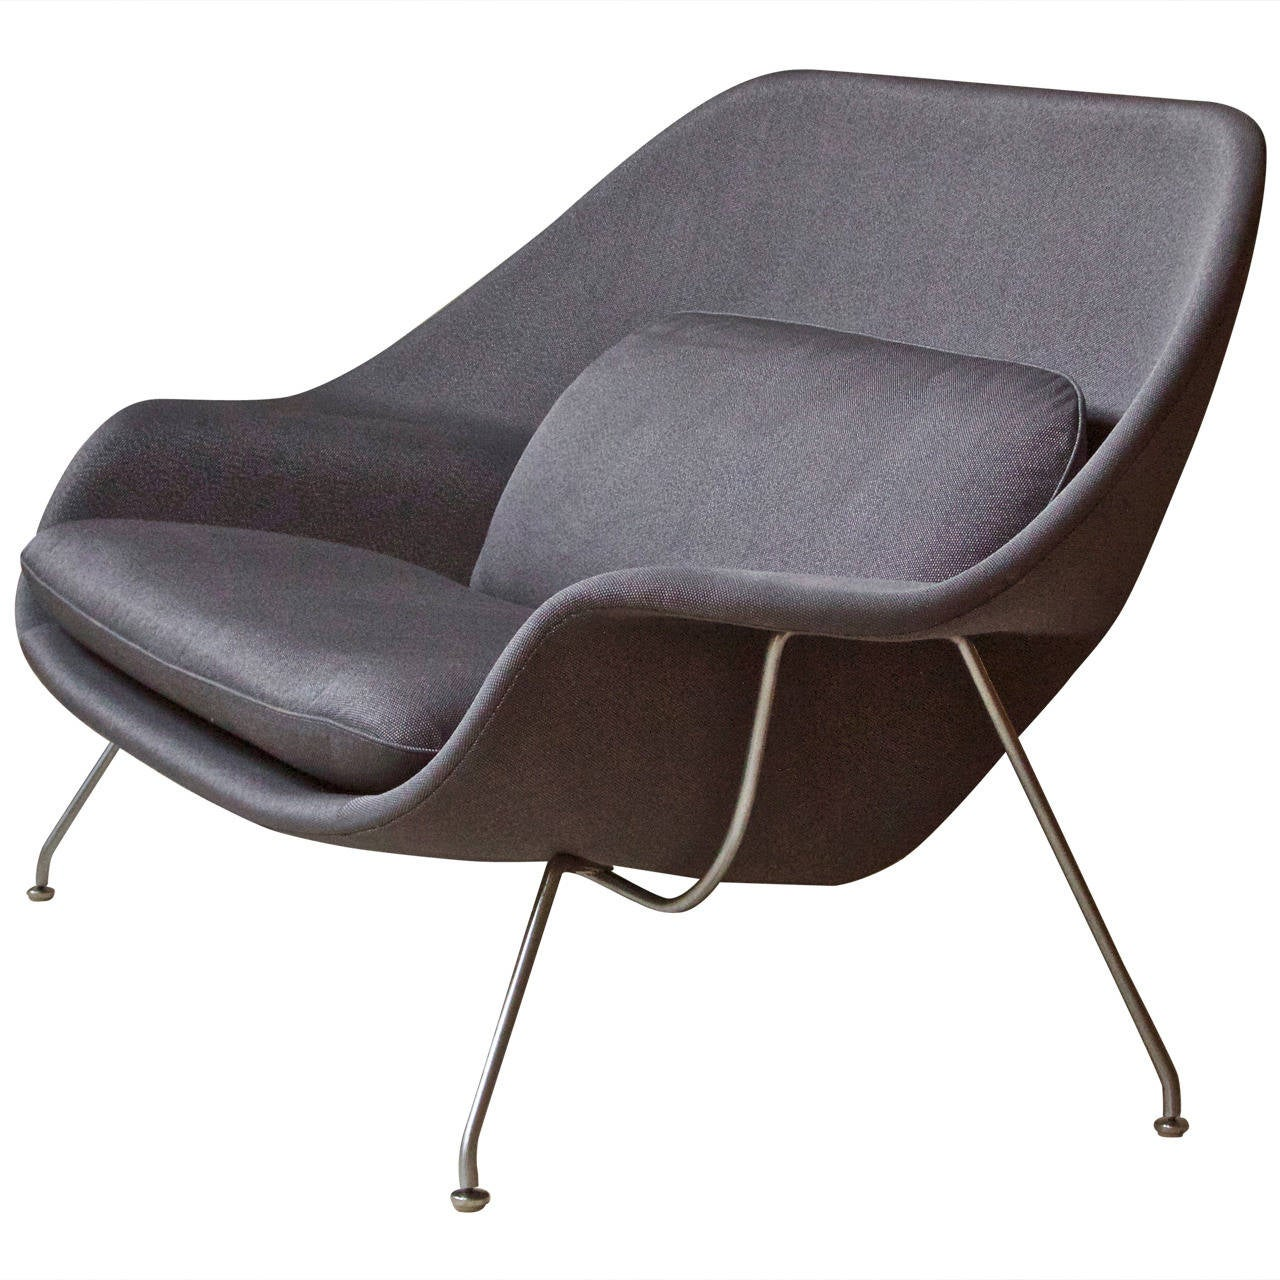 Rare and Early Womb Chair by Eero Saarinen for Knoll